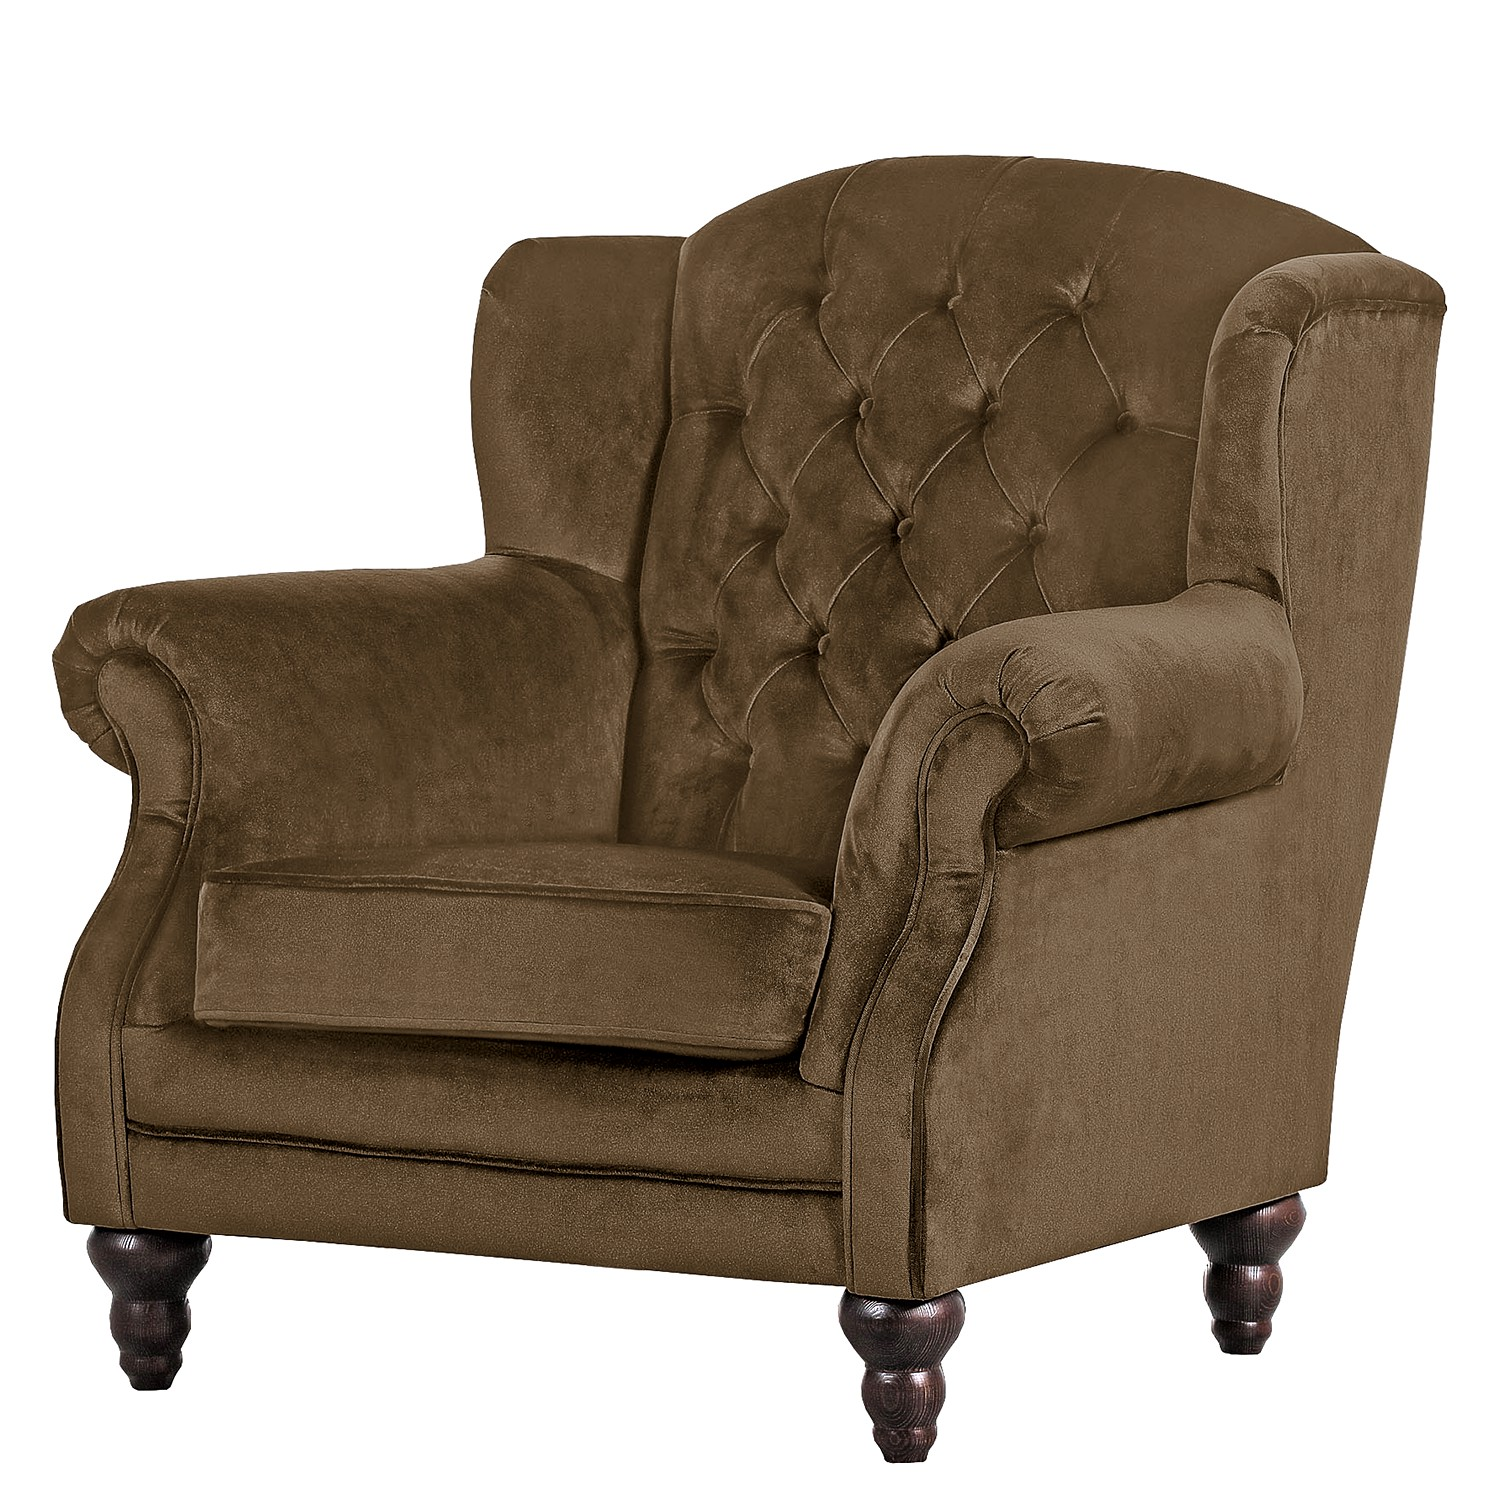 Home24 Oorfauteuil Jenner IV, home24